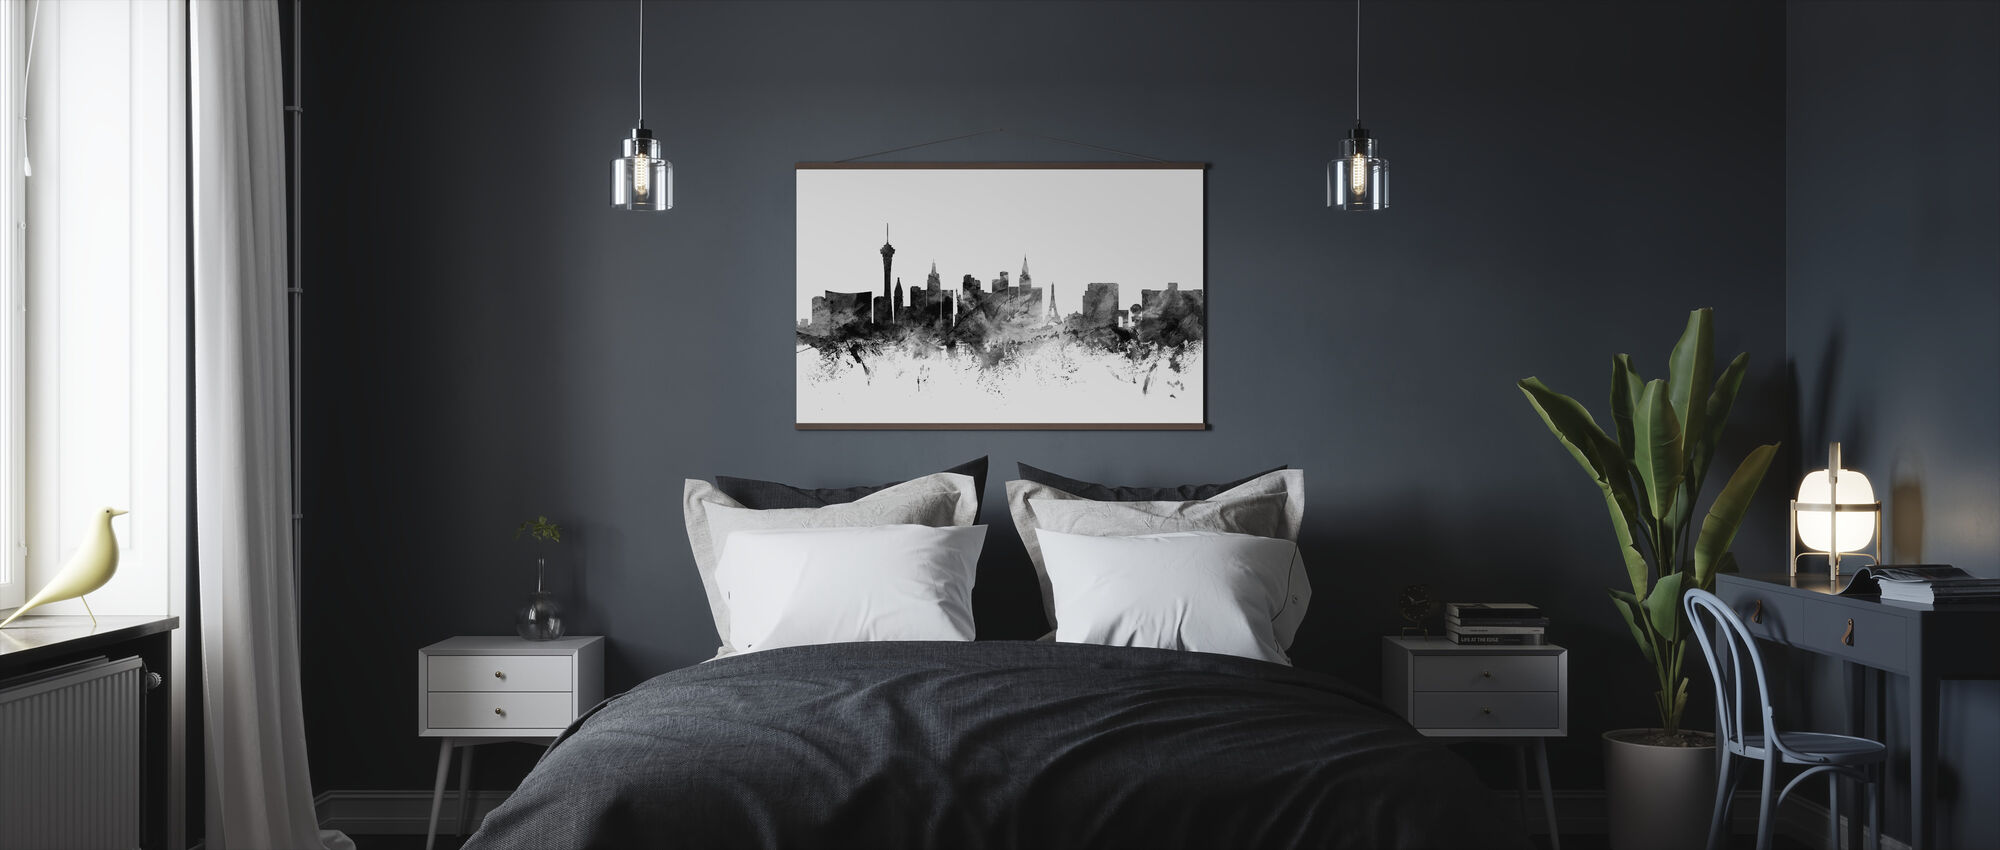 Las Vegas Skyline Black - Poster - Bedroom